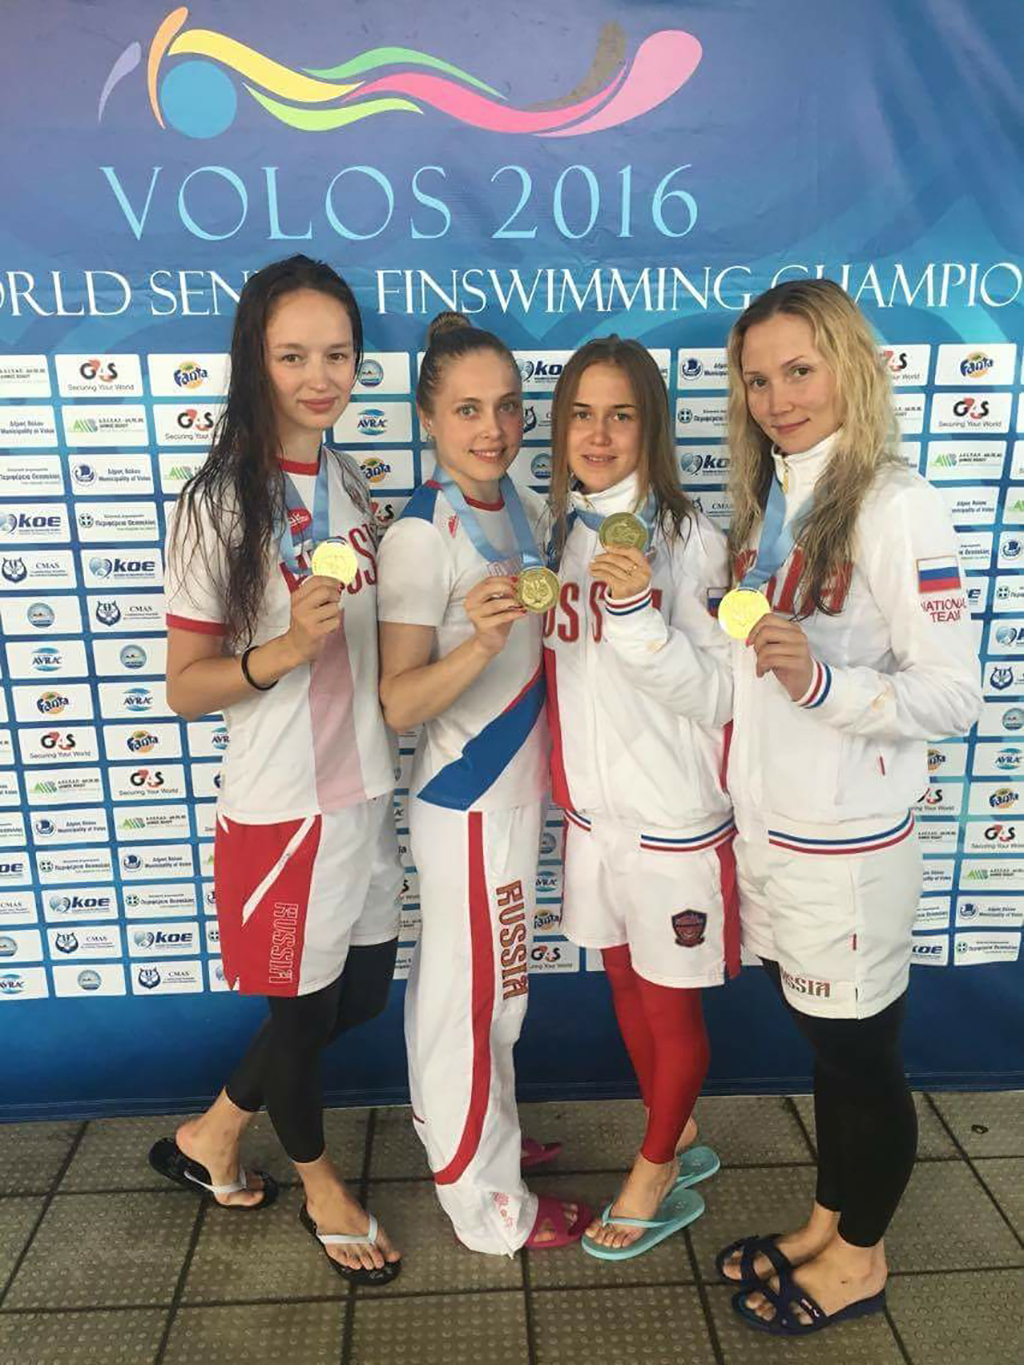 TUSUR student brings victory to Russia at the international finswimming championship